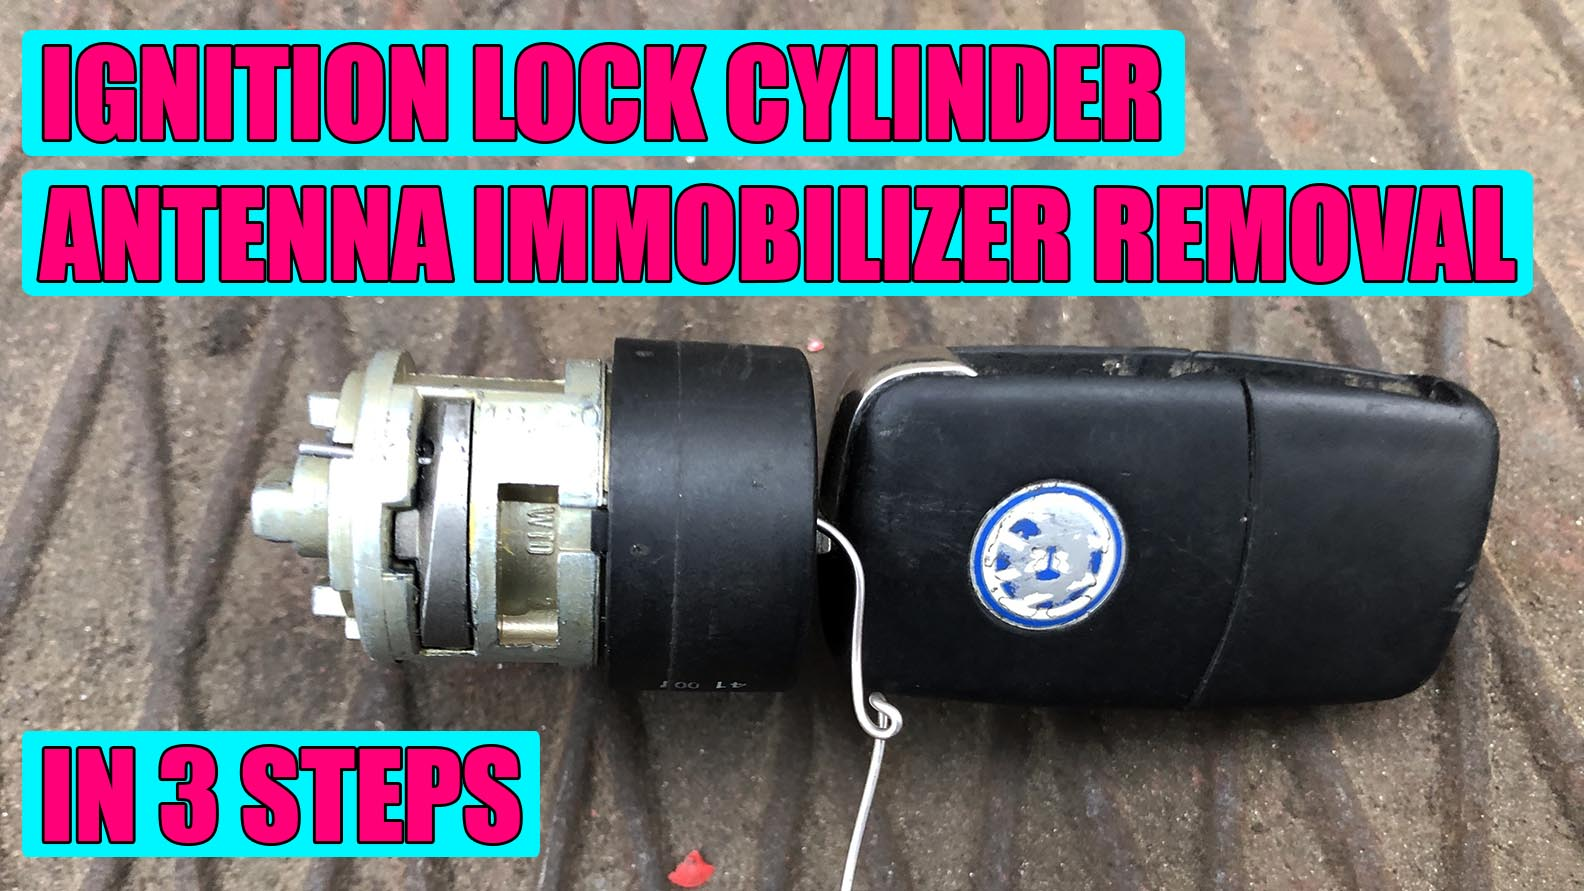 How To Remove Ignition Lock Cylinder Immobilizer Antenna Vw Golf Mk4